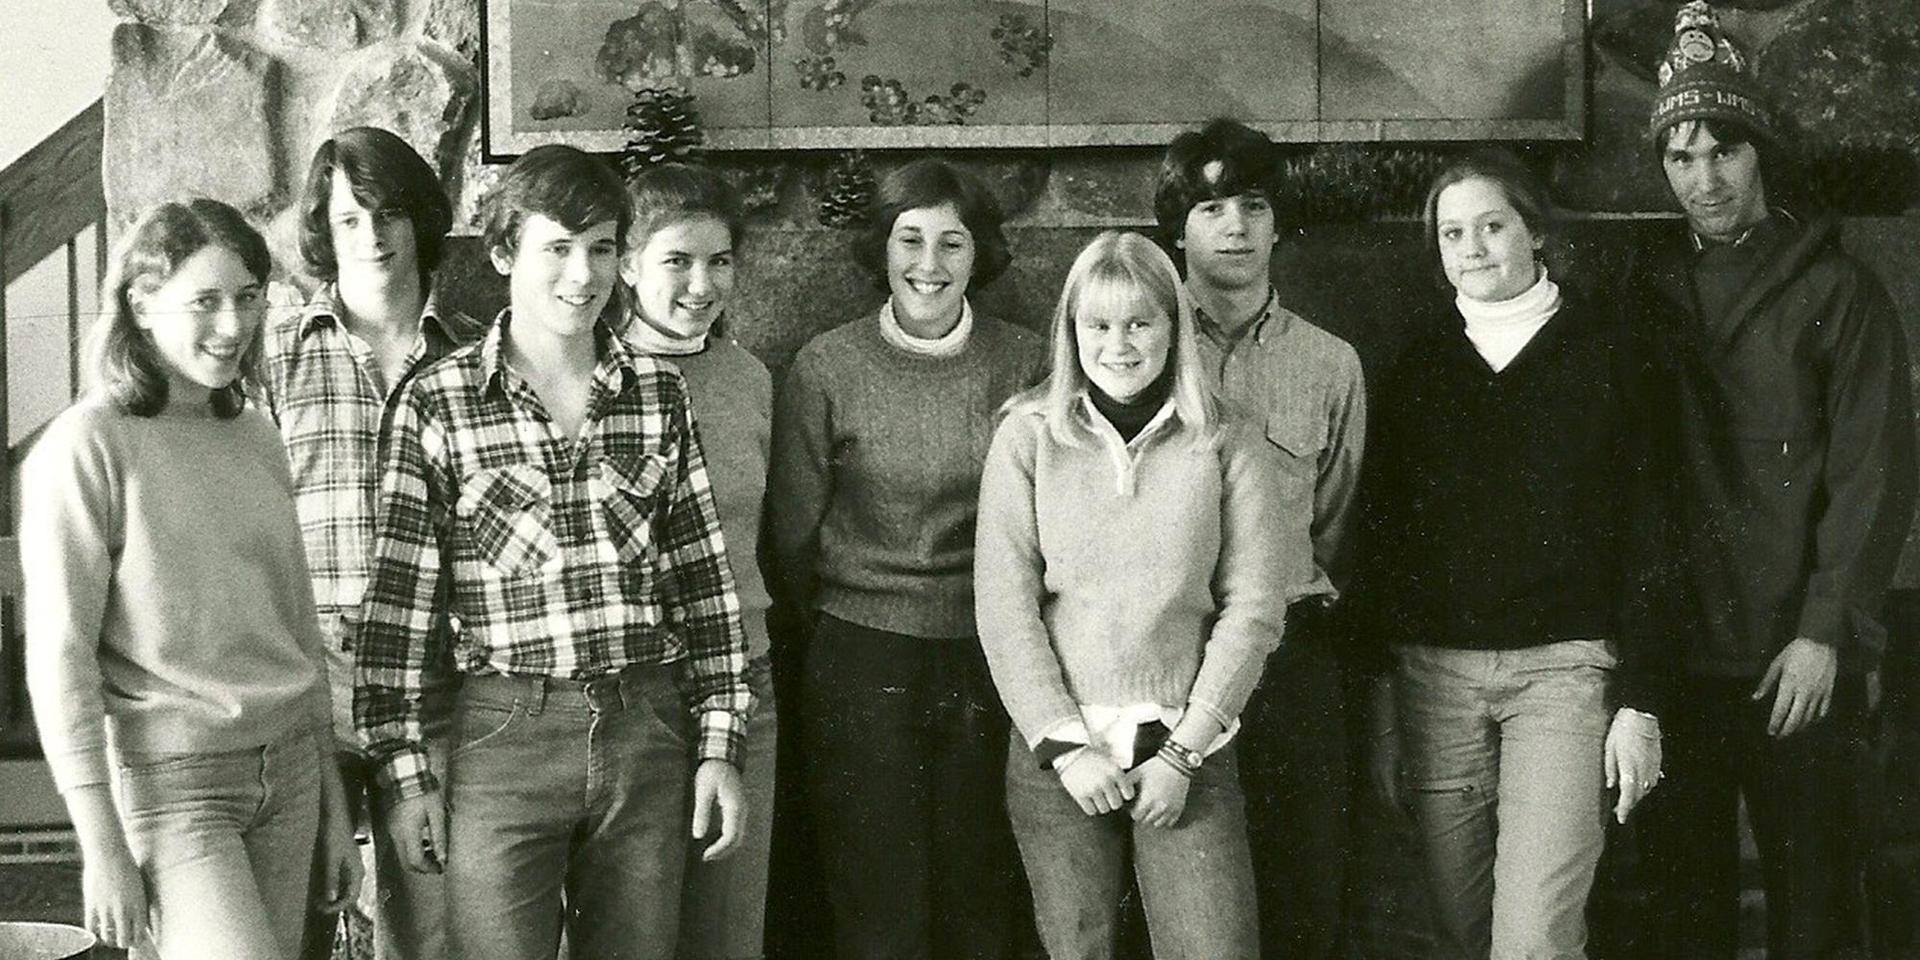 A vintage photo of students standing in front of the stone fireplace in McLane Building.